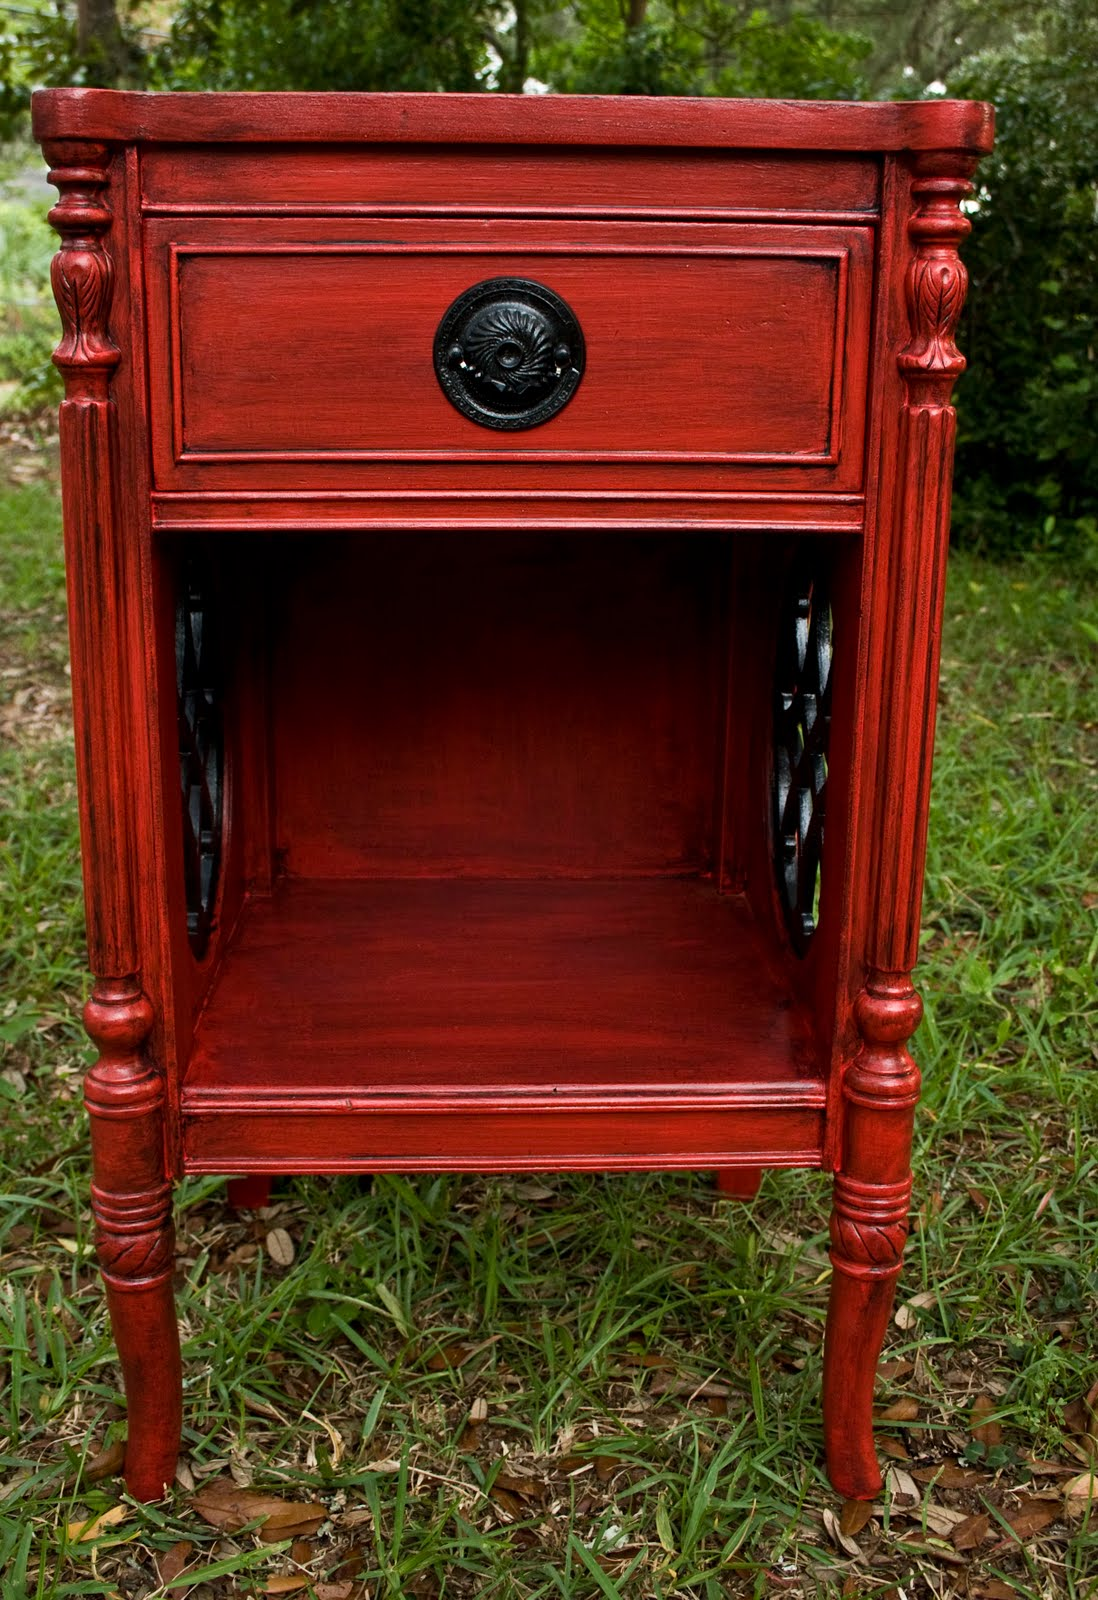 Modernly Shabby Chic Furniture Red And Black Glazed. Kid Bedroom Ideas. Grey Couch Living Room. California Rocks. Bar Stools Low Back. Kiva Kitchen And Bath. Basement Bars. 3x3 Window. Acrylic Vs Cast Iron Tub